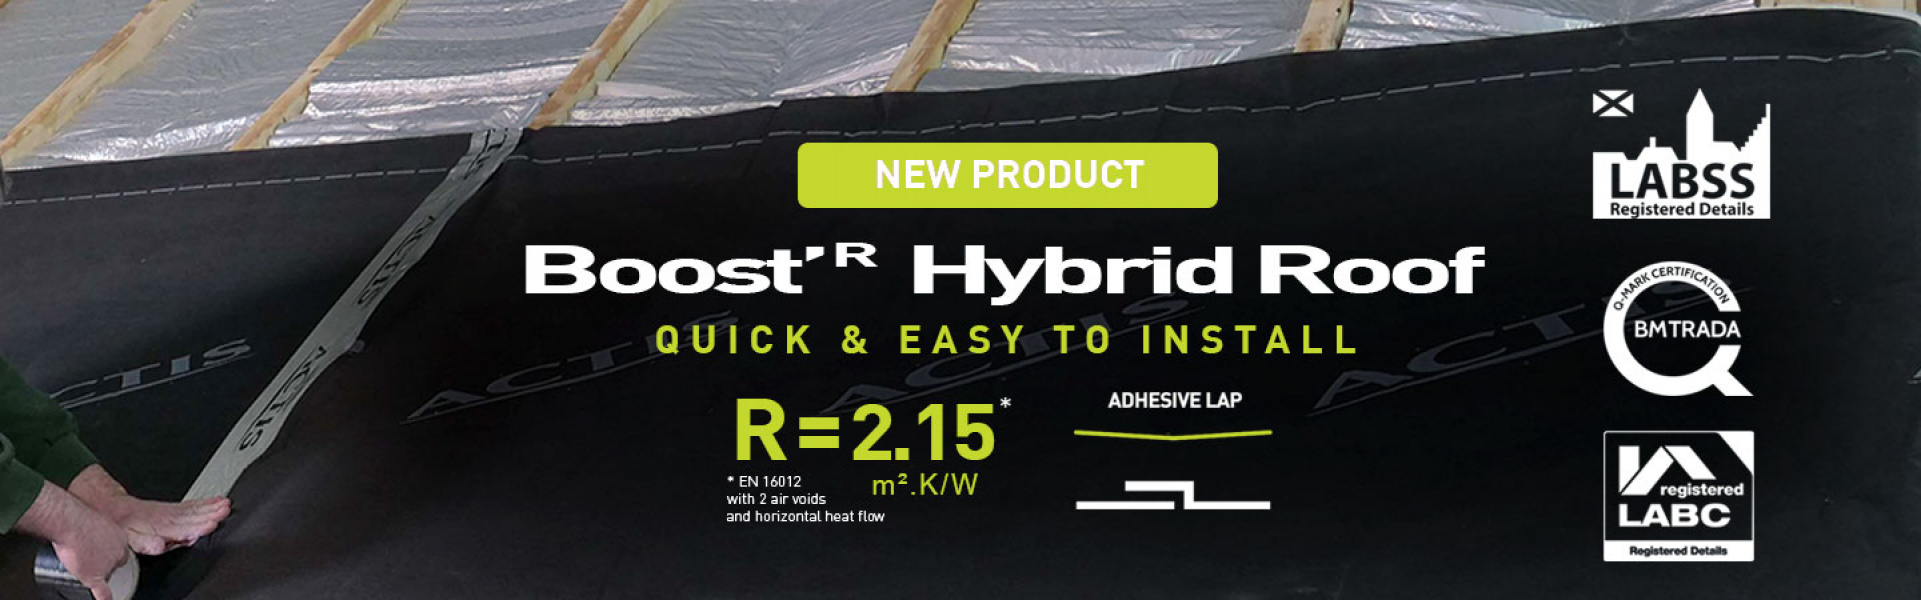 BOOSTR HYBRID ROOF